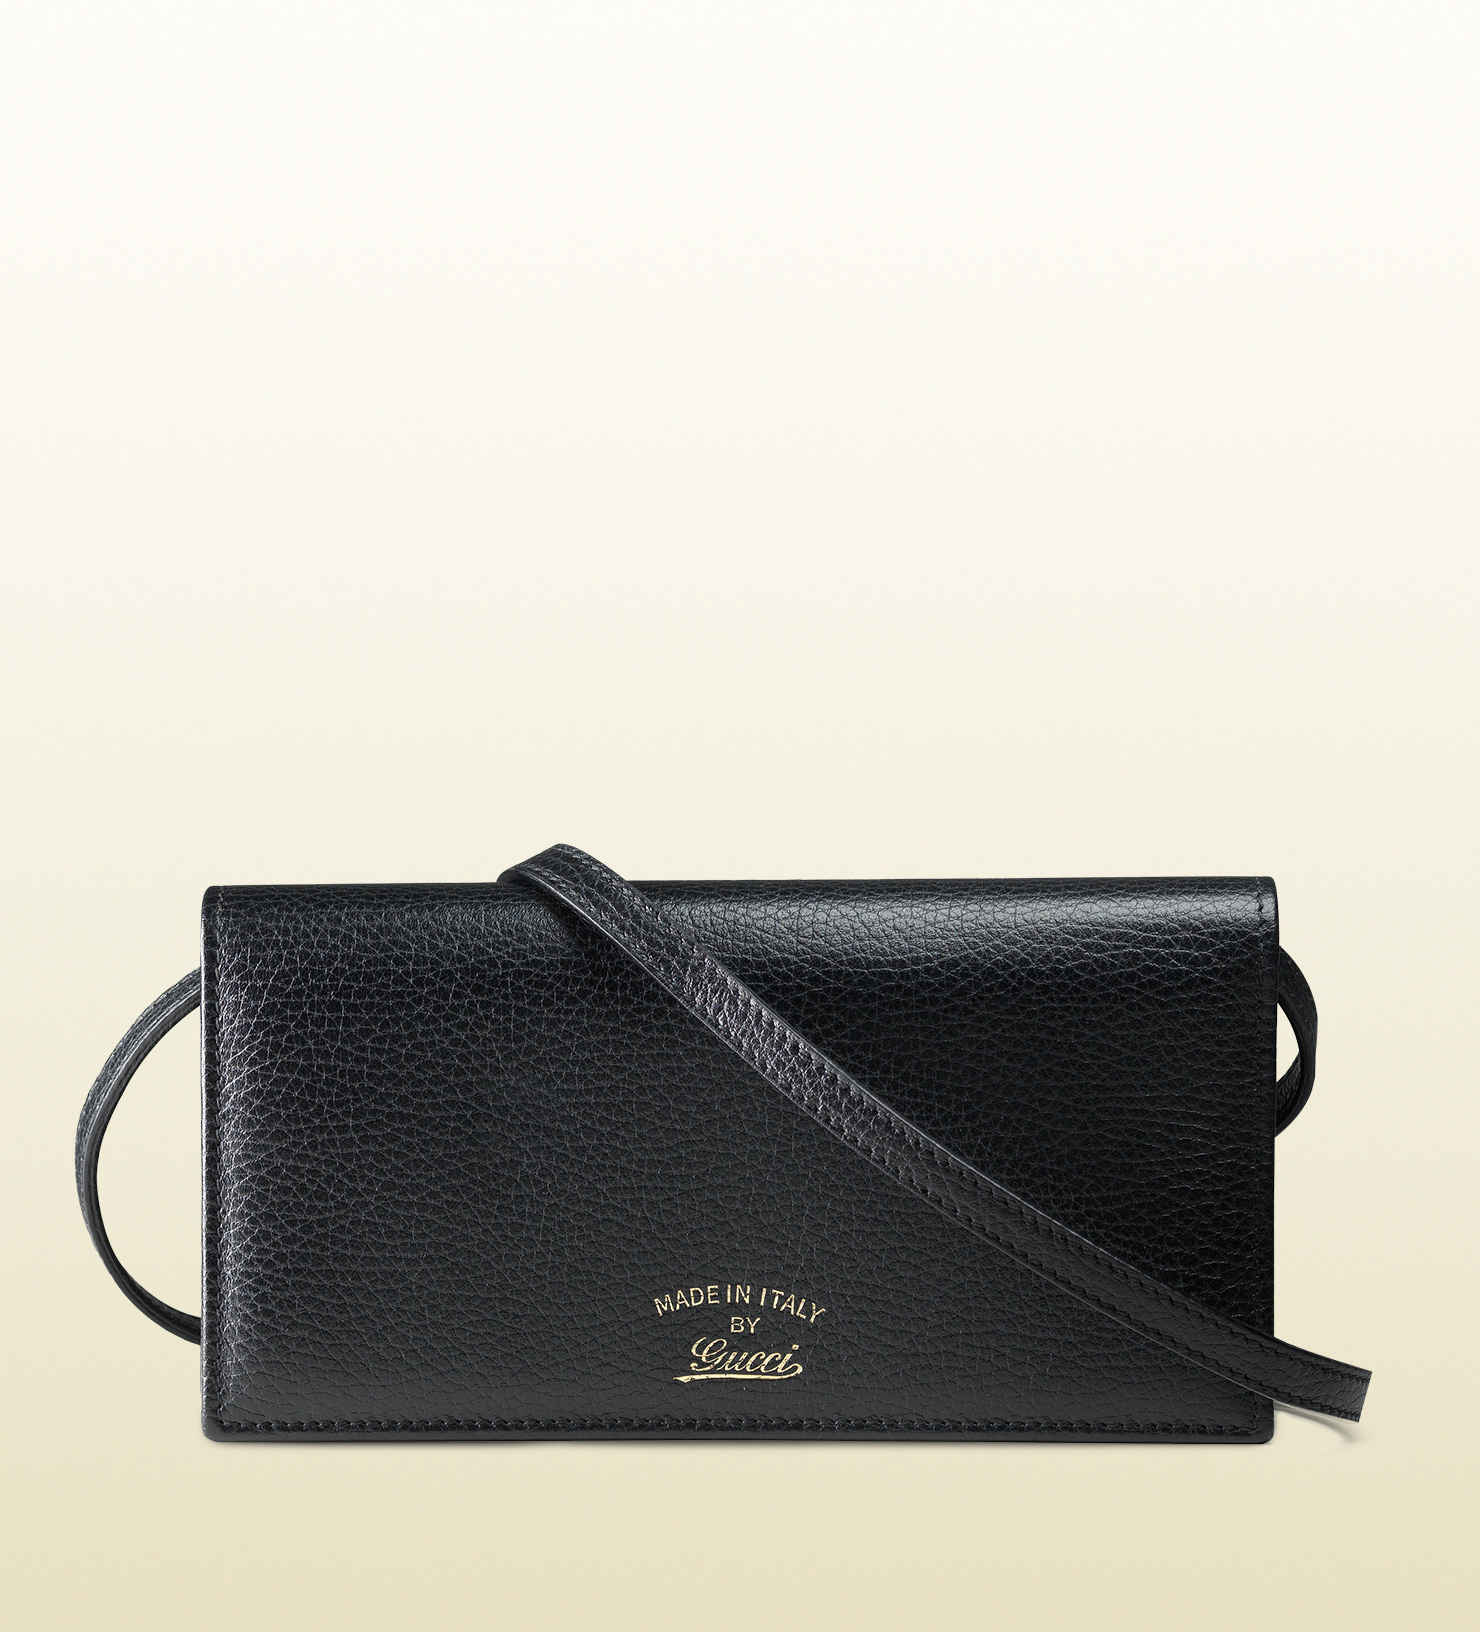 354078bc1b10 Gucci Swing Wallet On Strap | Stanford Center for Opportunity Policy ...